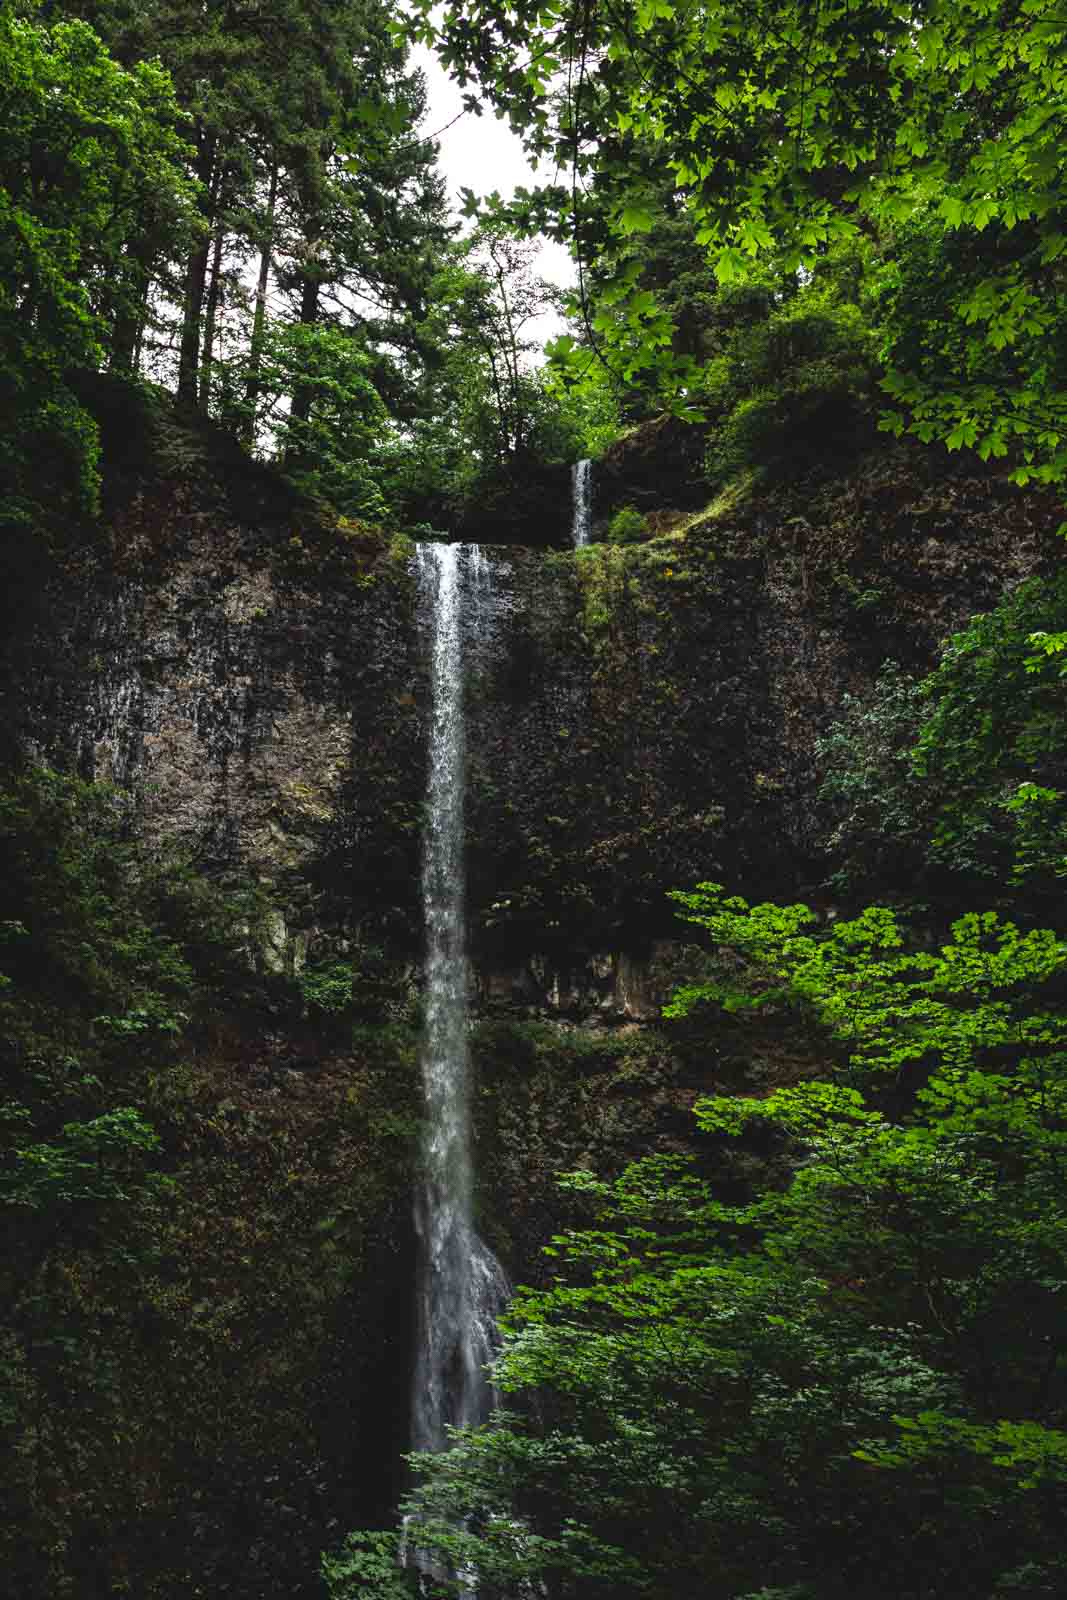 Double Falls is the tallest waterfall in Silver Falls State Park.